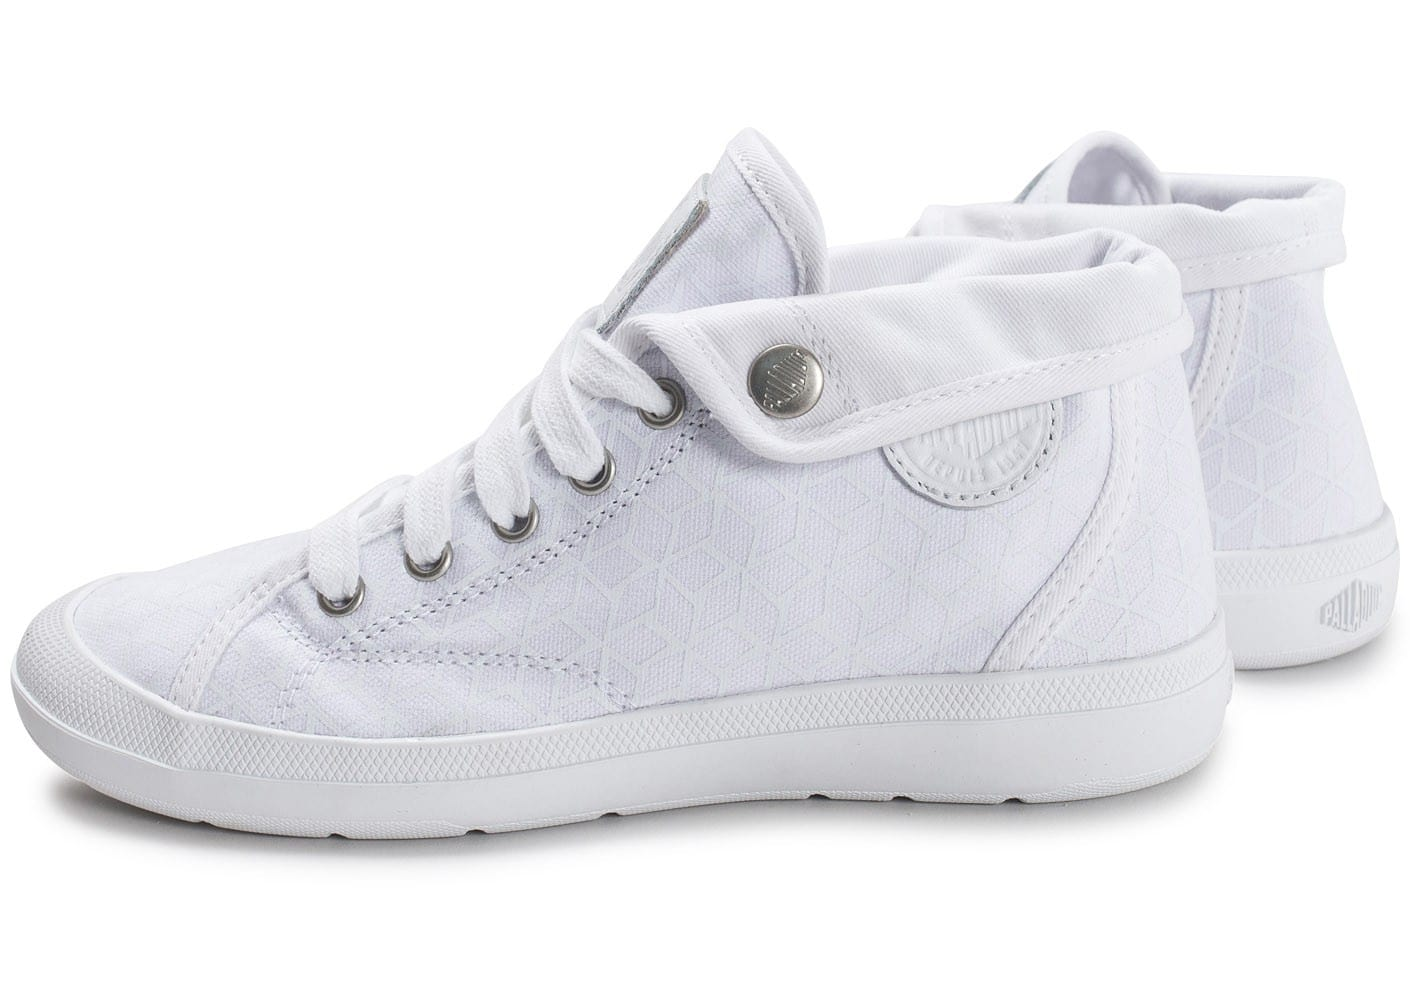 Palladium Adventure Mid blanche Chaussures Baskets femme